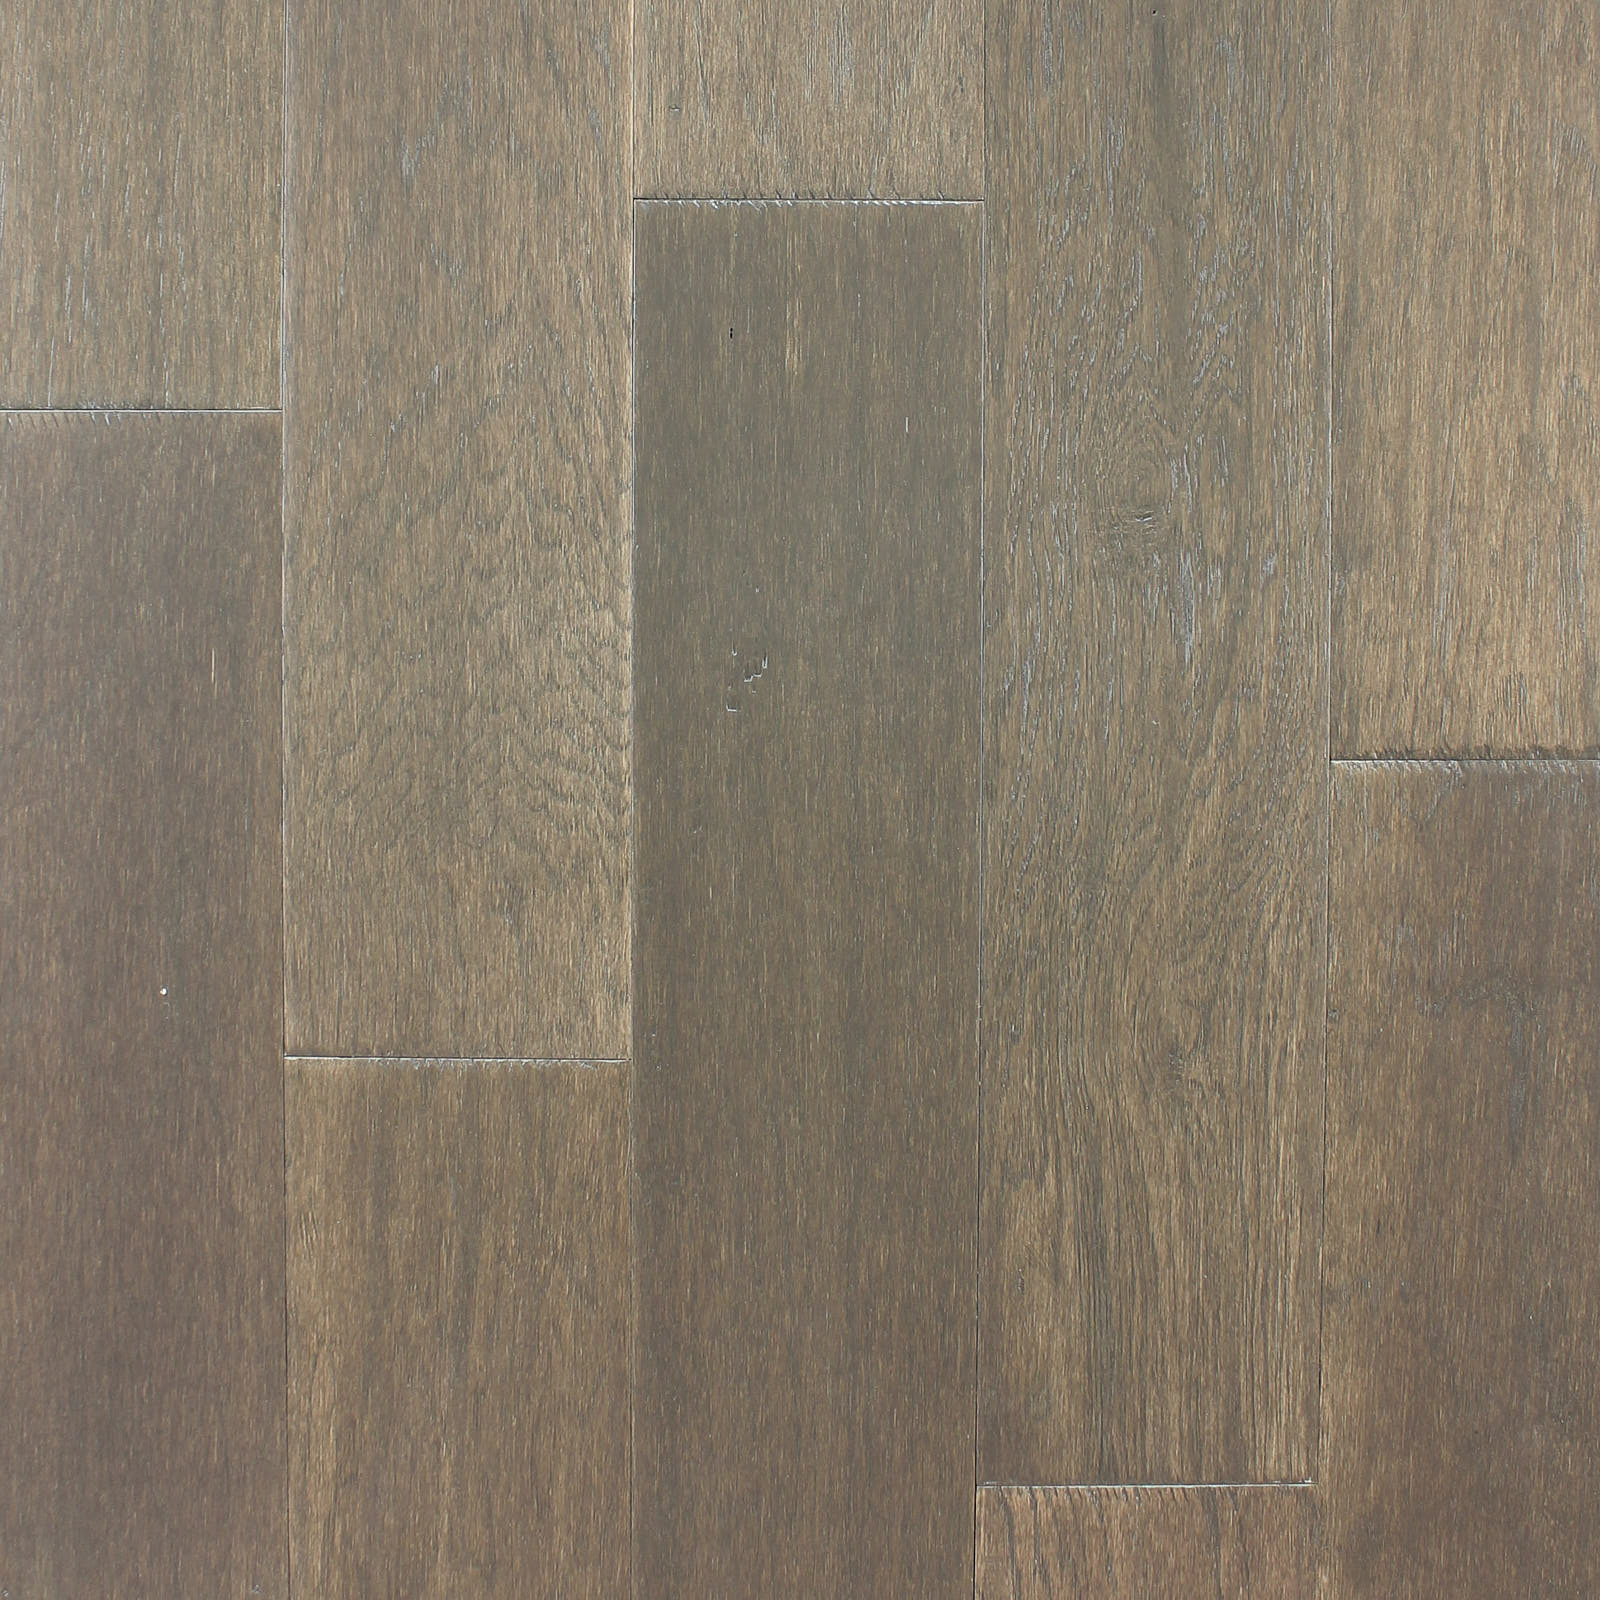 River Ranch Weathered Stone Engineered Hardwood Flooring